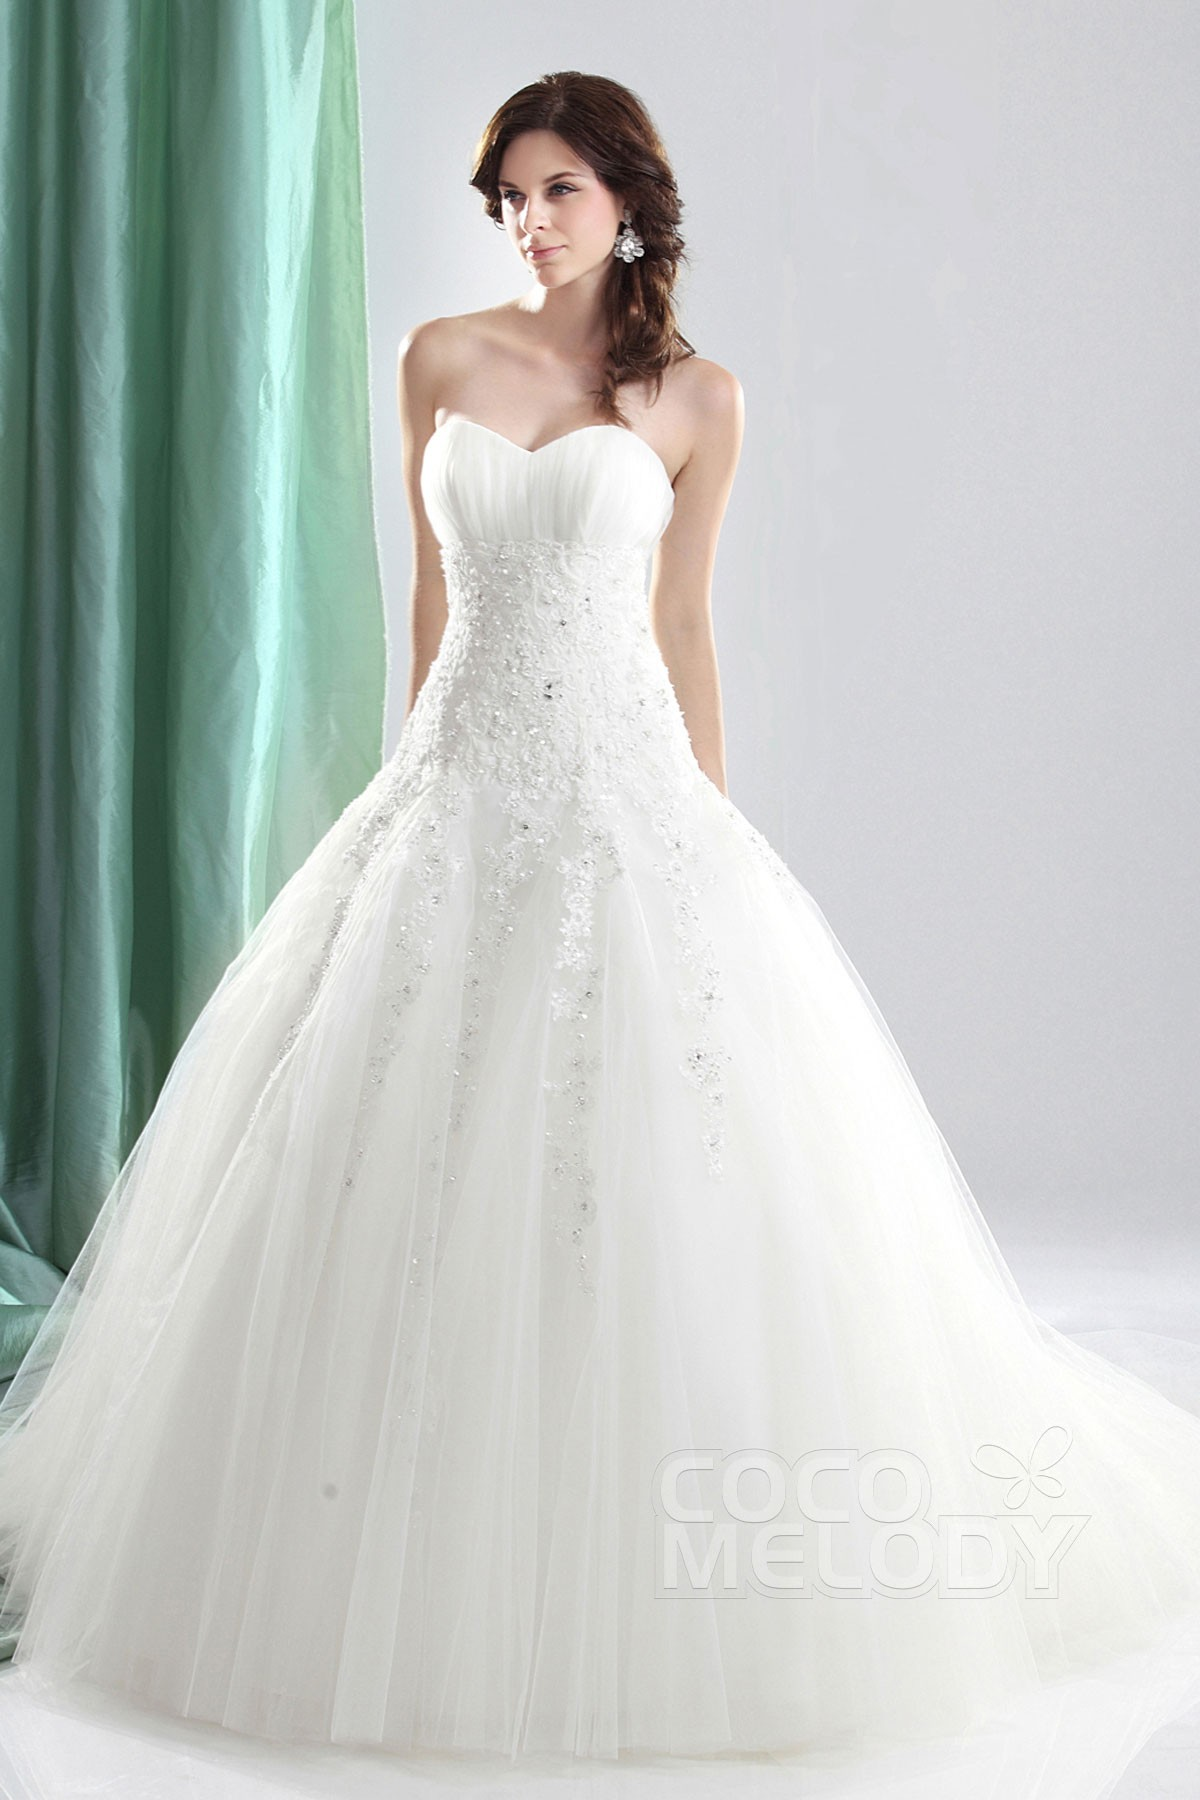 Cocomelody ball gown sweetheart court train tulle wedding for High low ball gown wedding dress